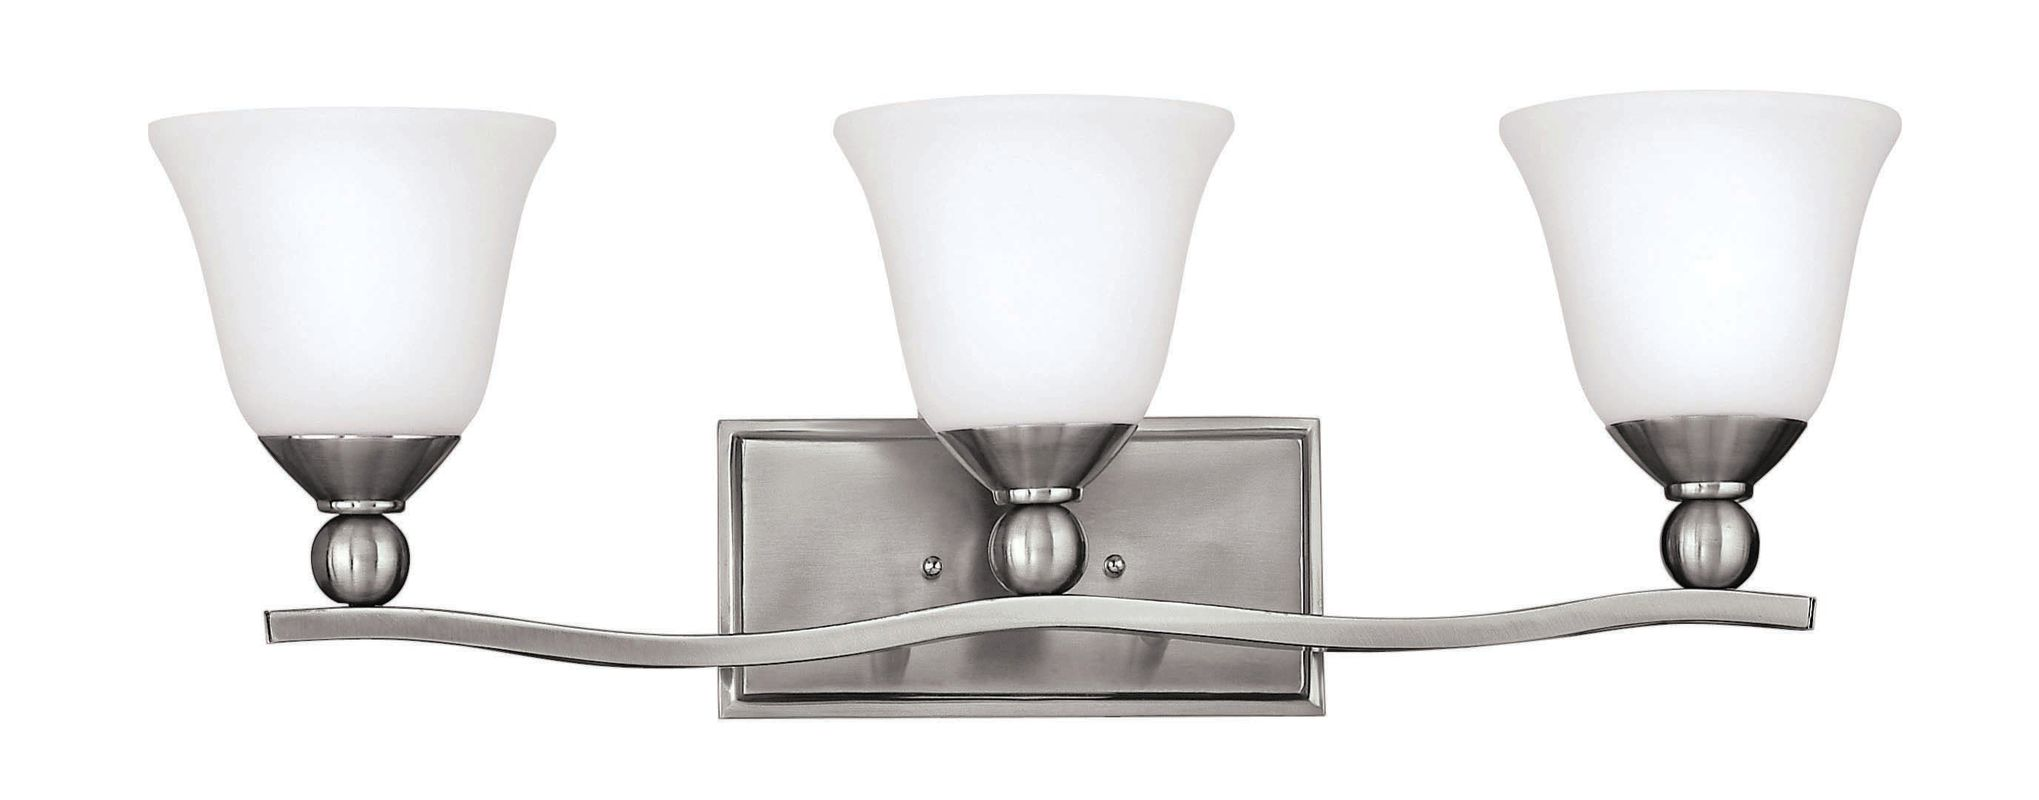 Hinkley lighting 5893bn gu24 brushed nickel 3 light 26 for Hinkley bathroom vanity lighting